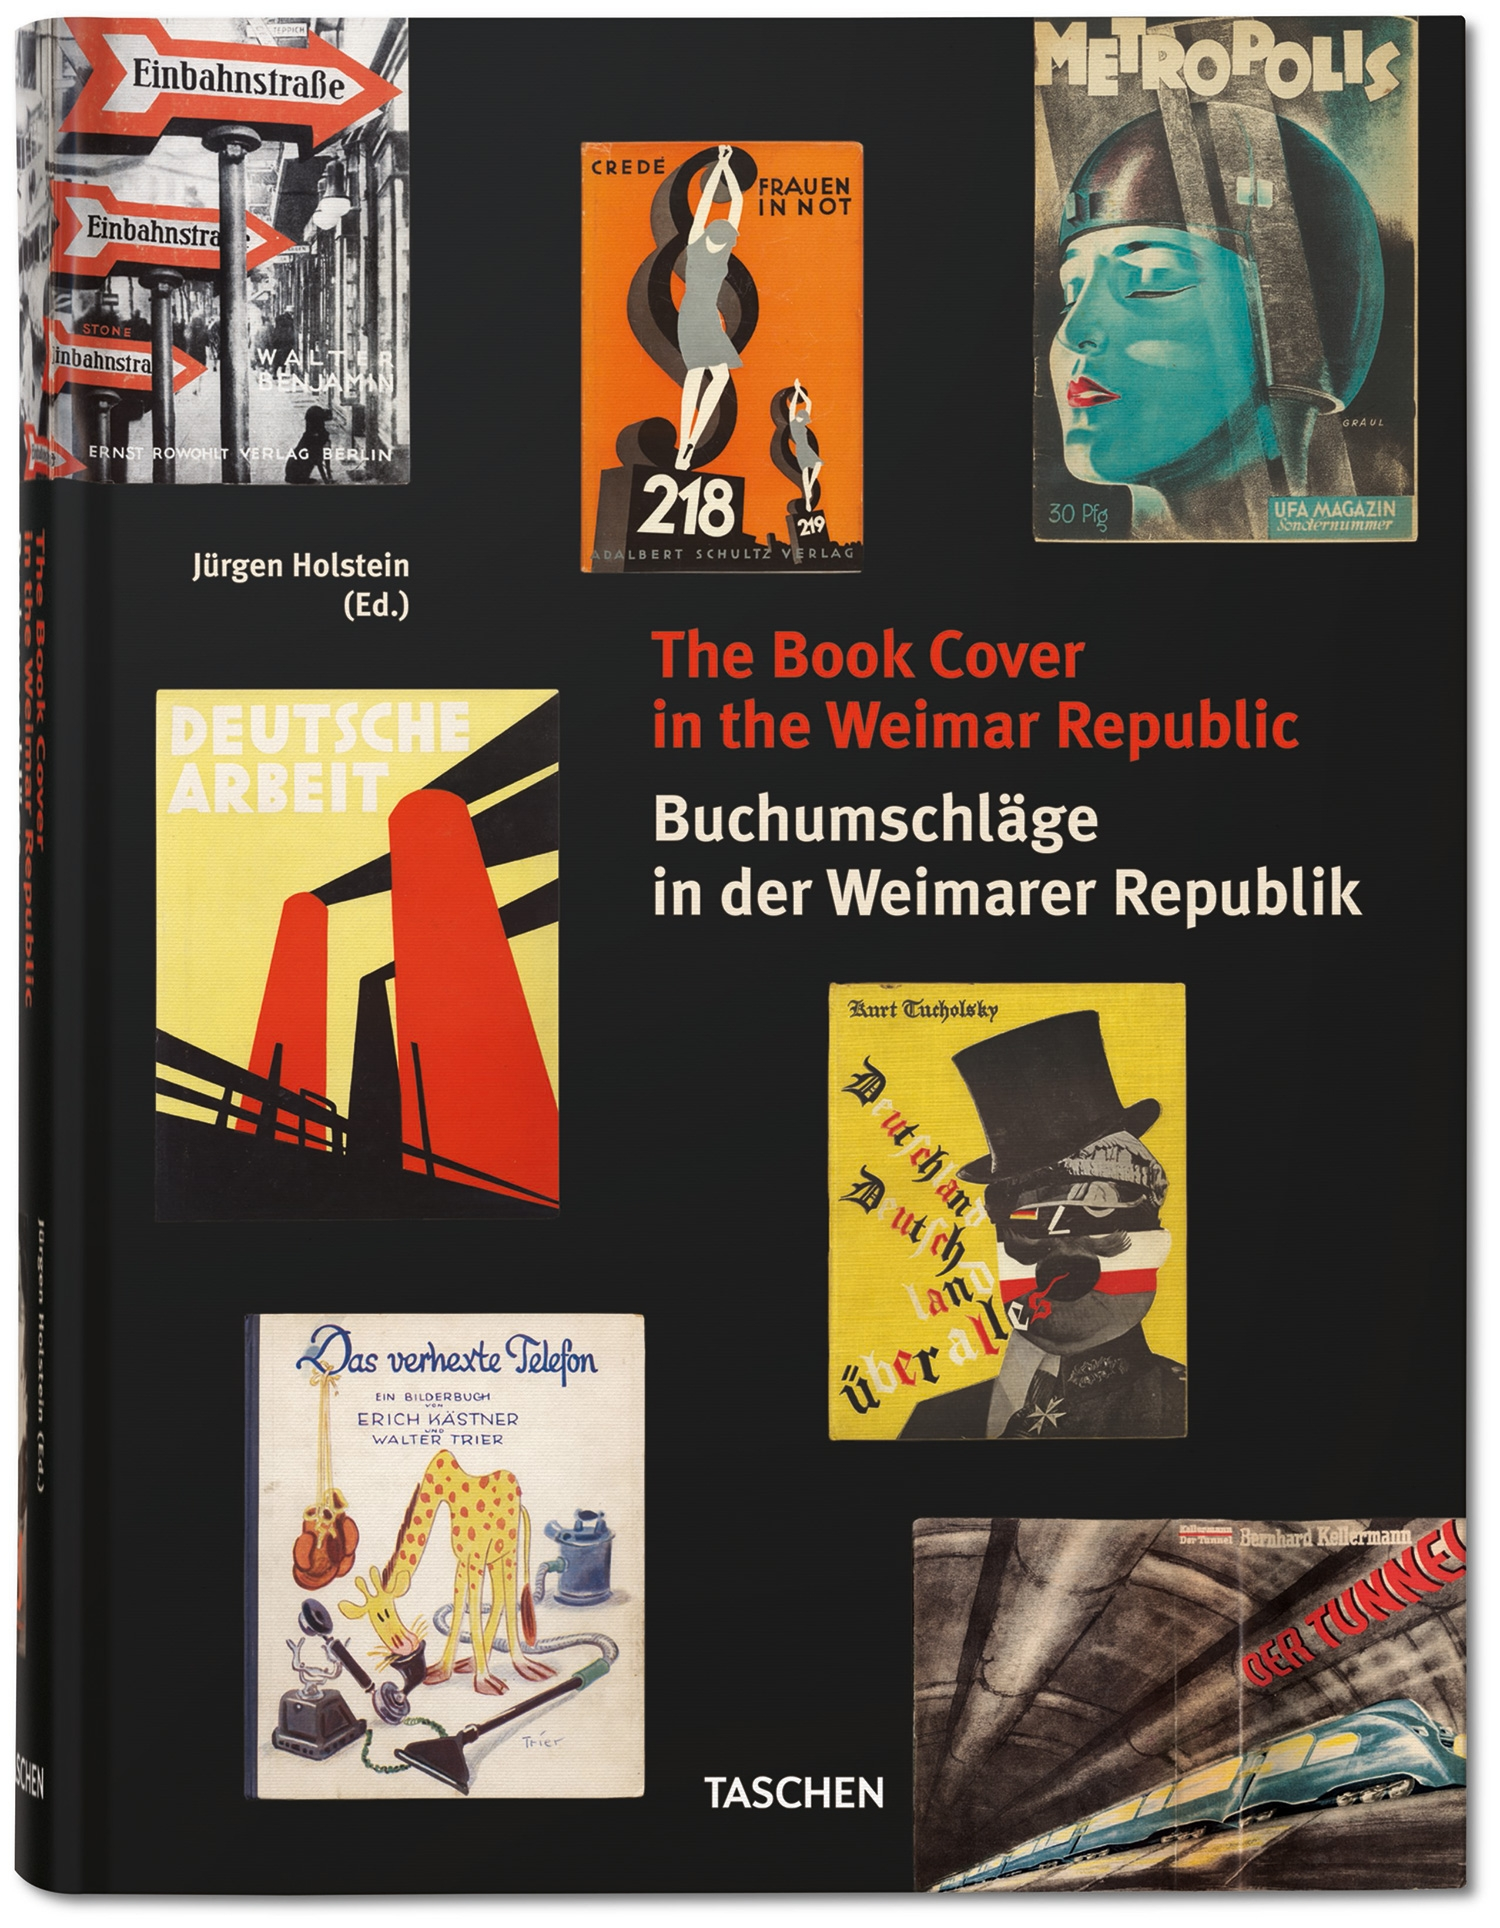 Groundbreaking Book Cover Designs From 1920s 30s Germany Digital